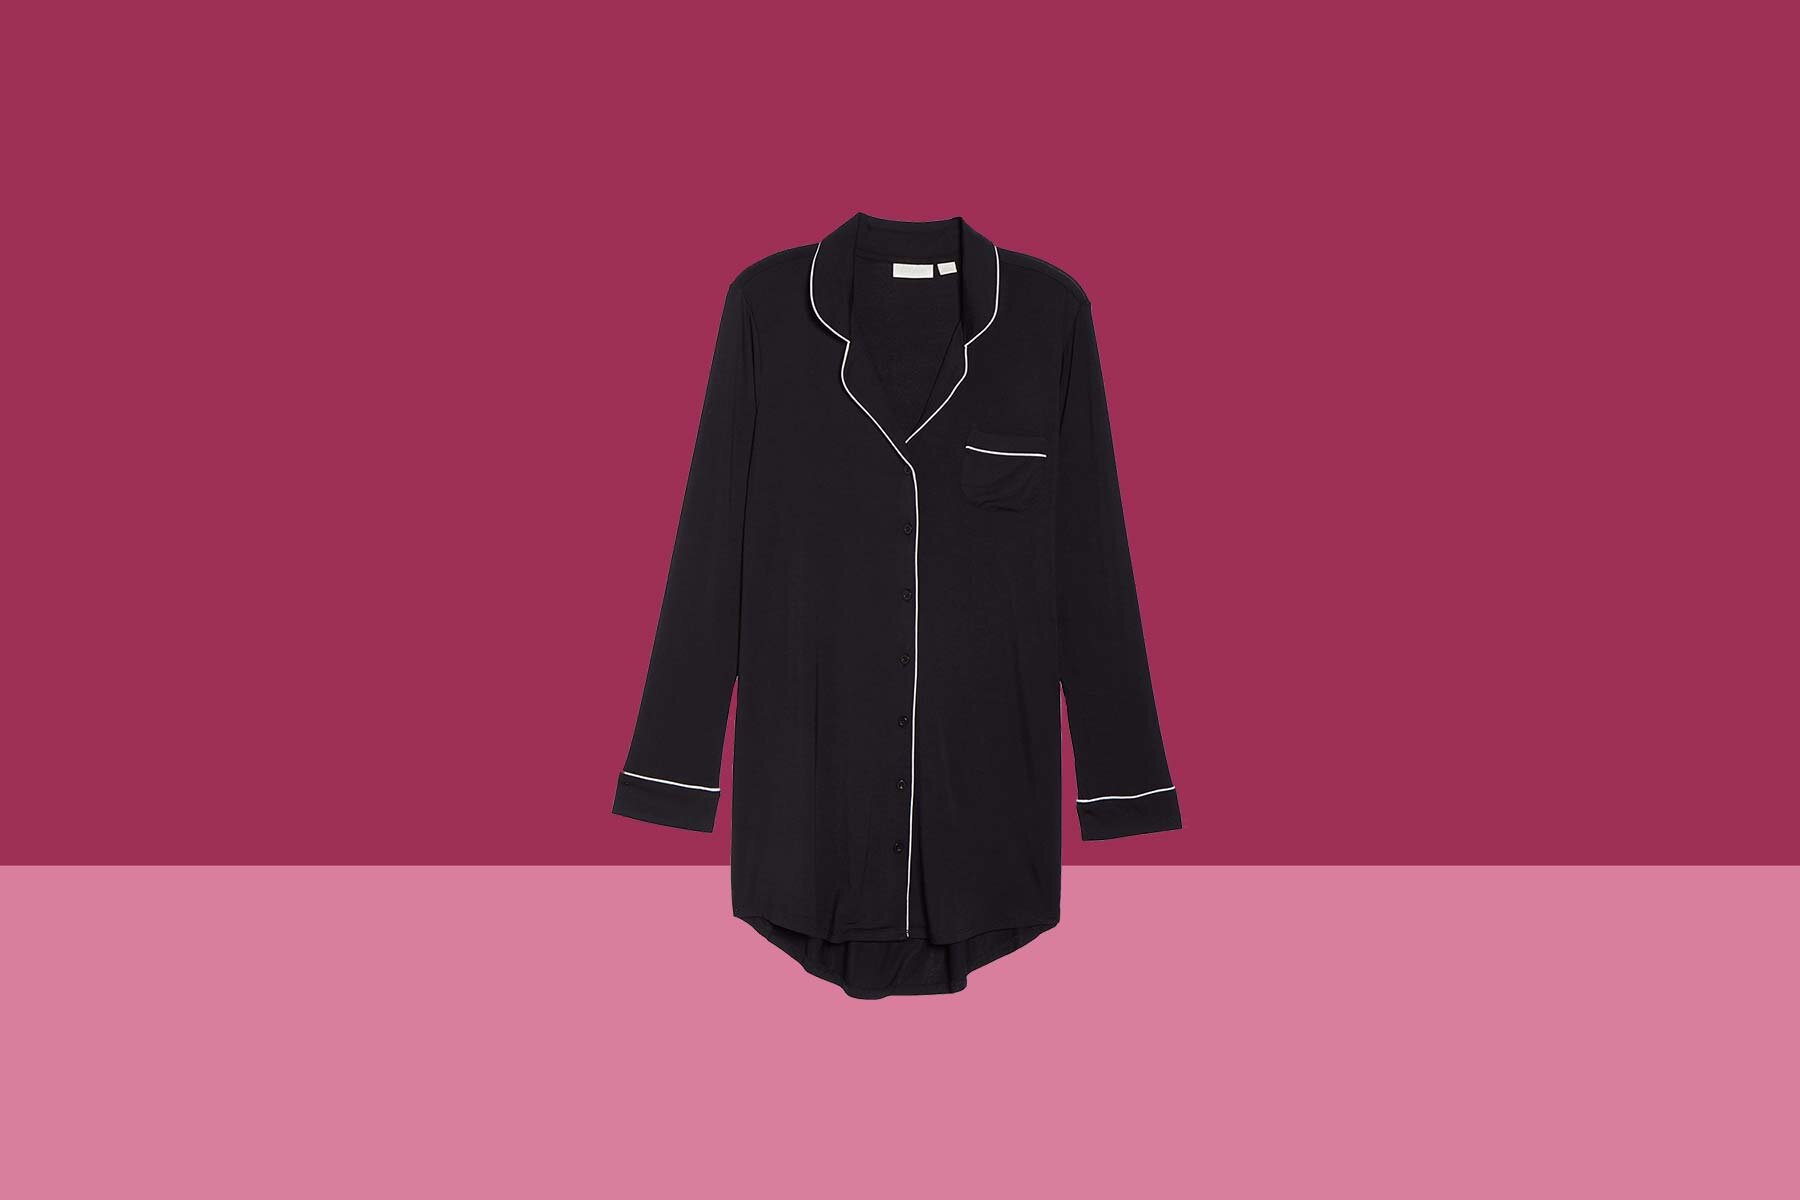 b2c7e39fbc The 8 Most Comfortable Pajamas For Lounging